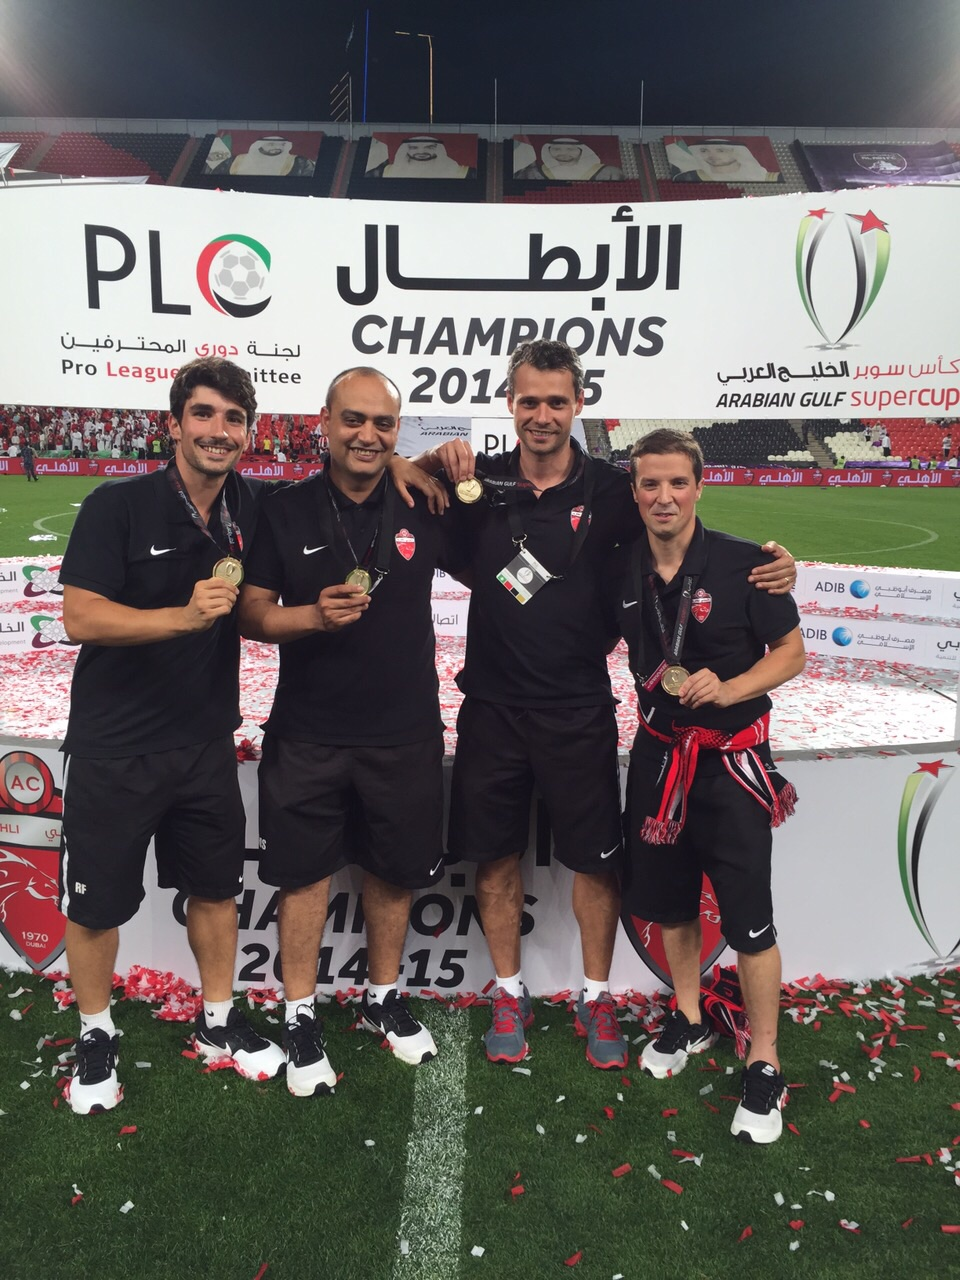 Al Ahli FC Medical Department physiotherapists and Doctor after the Arabian Gulf Supercup Award Ceremony